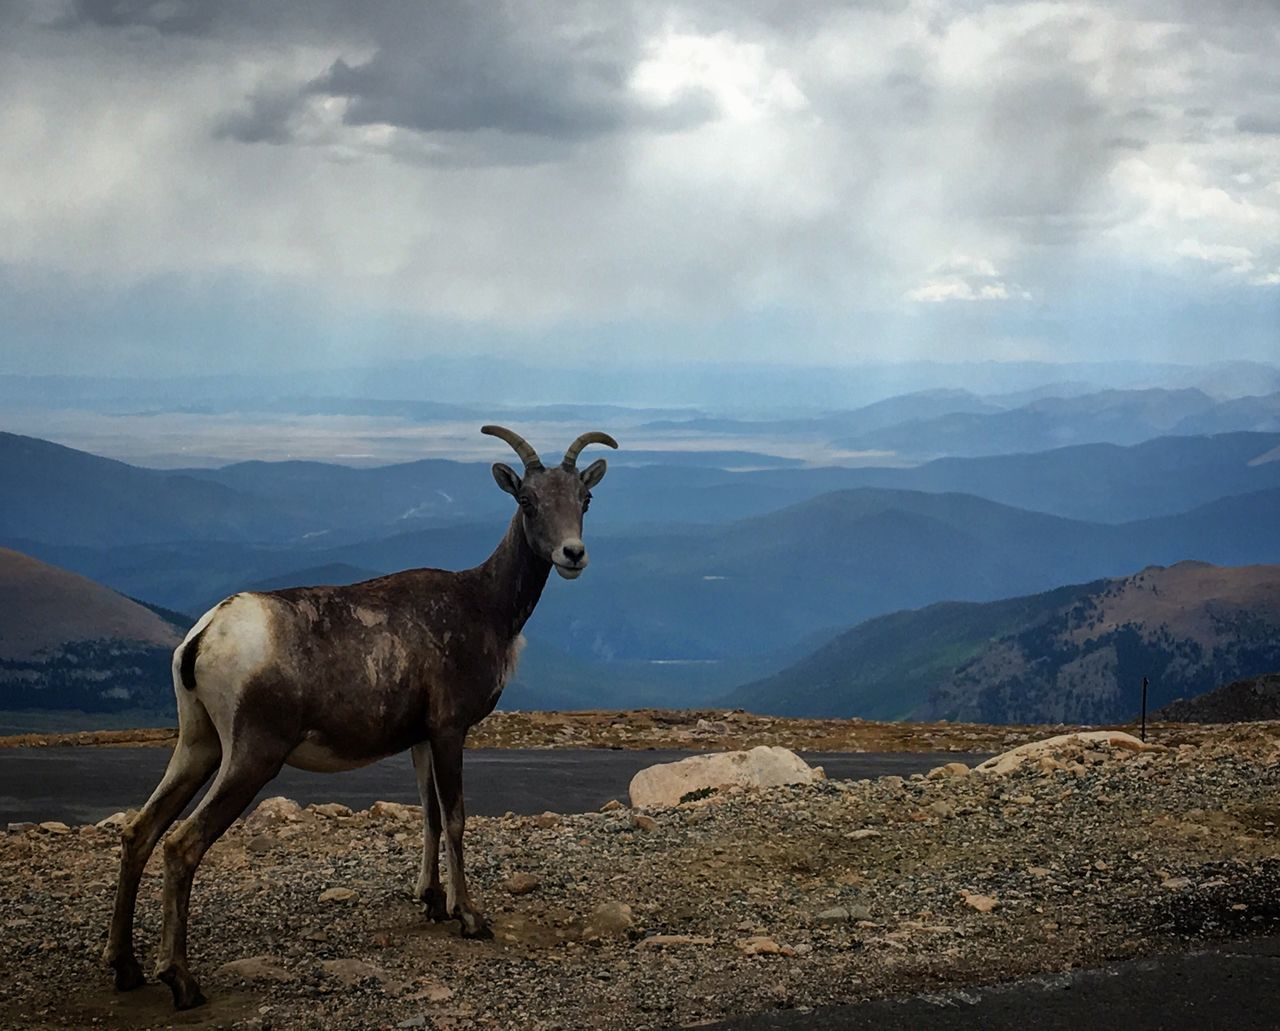 mountain, sky, cloud - sky, animal, animal themes, beauty in nature, mammal, environment, scenics - nature, nature, vertebrate, mountain range, standing, day, no people, one animal, landscape, domestic animals, animal wildlife, tranquil scene, outdoors, herbivorous